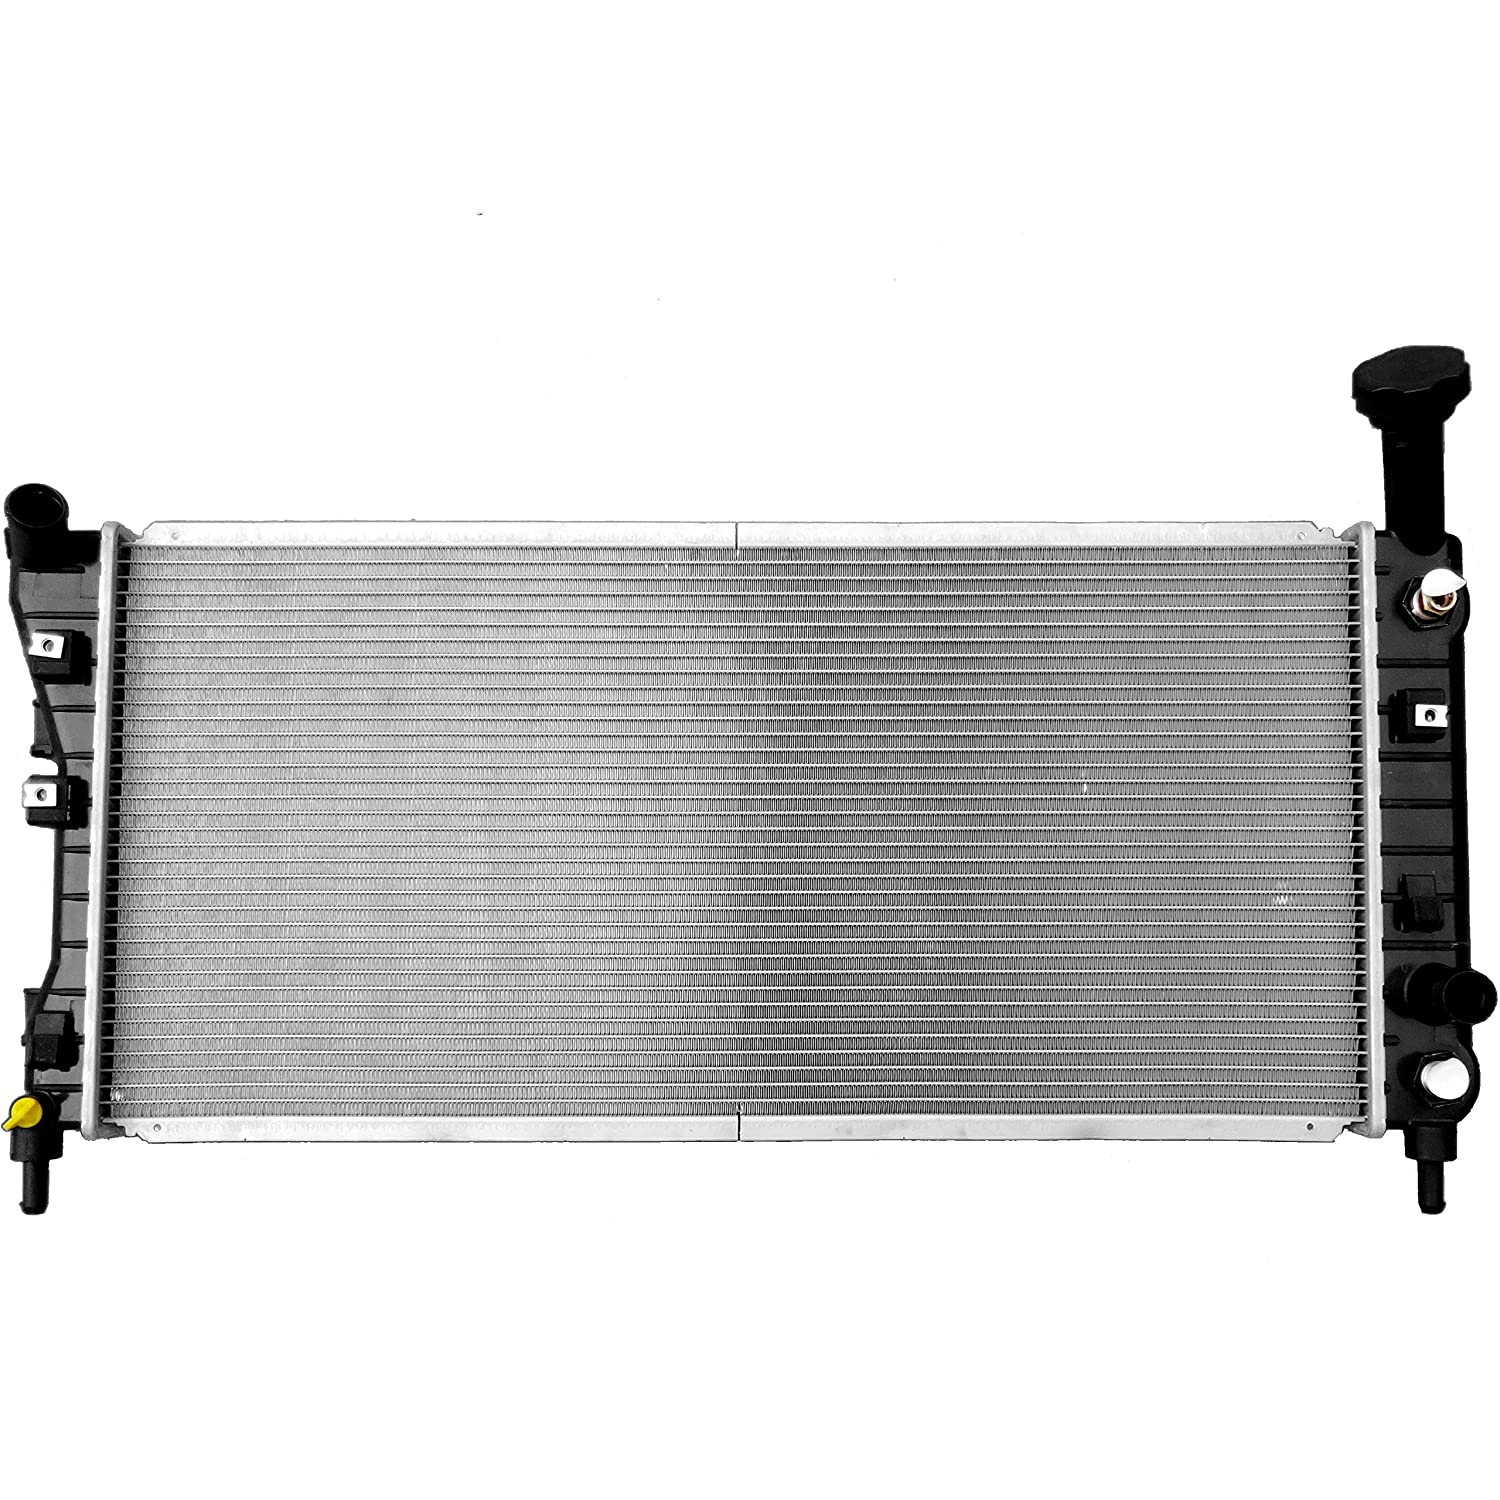 SCITOO 2710 Radiator fits for 2005-2009 Buick Allure CX/CXL/CXS Sedan 4-Door 3.6L 3.8L Buick Lacrosse CX/CXL Sedan 4-Door 3.8L 069595-5206-1529251